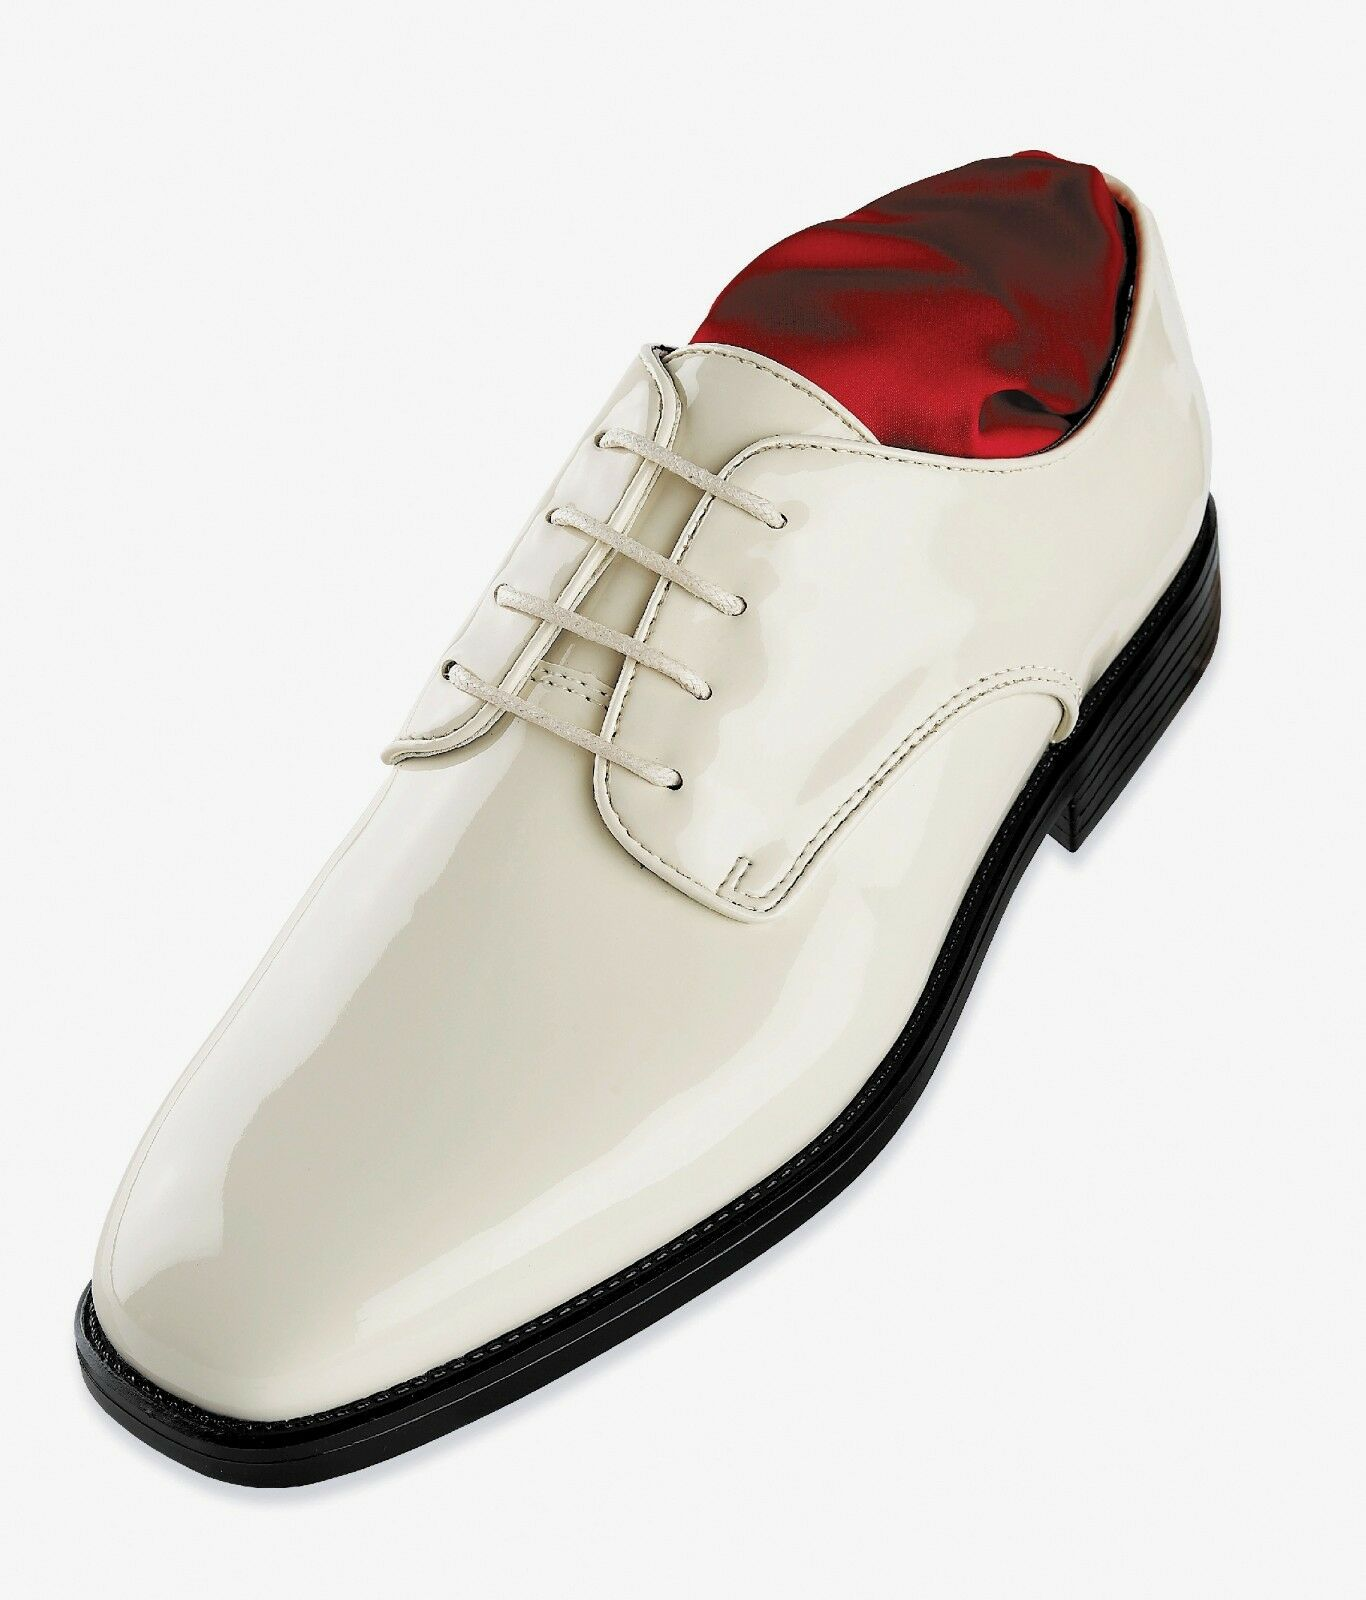 mens after six st010 tuxedo formal dress shoes white patent